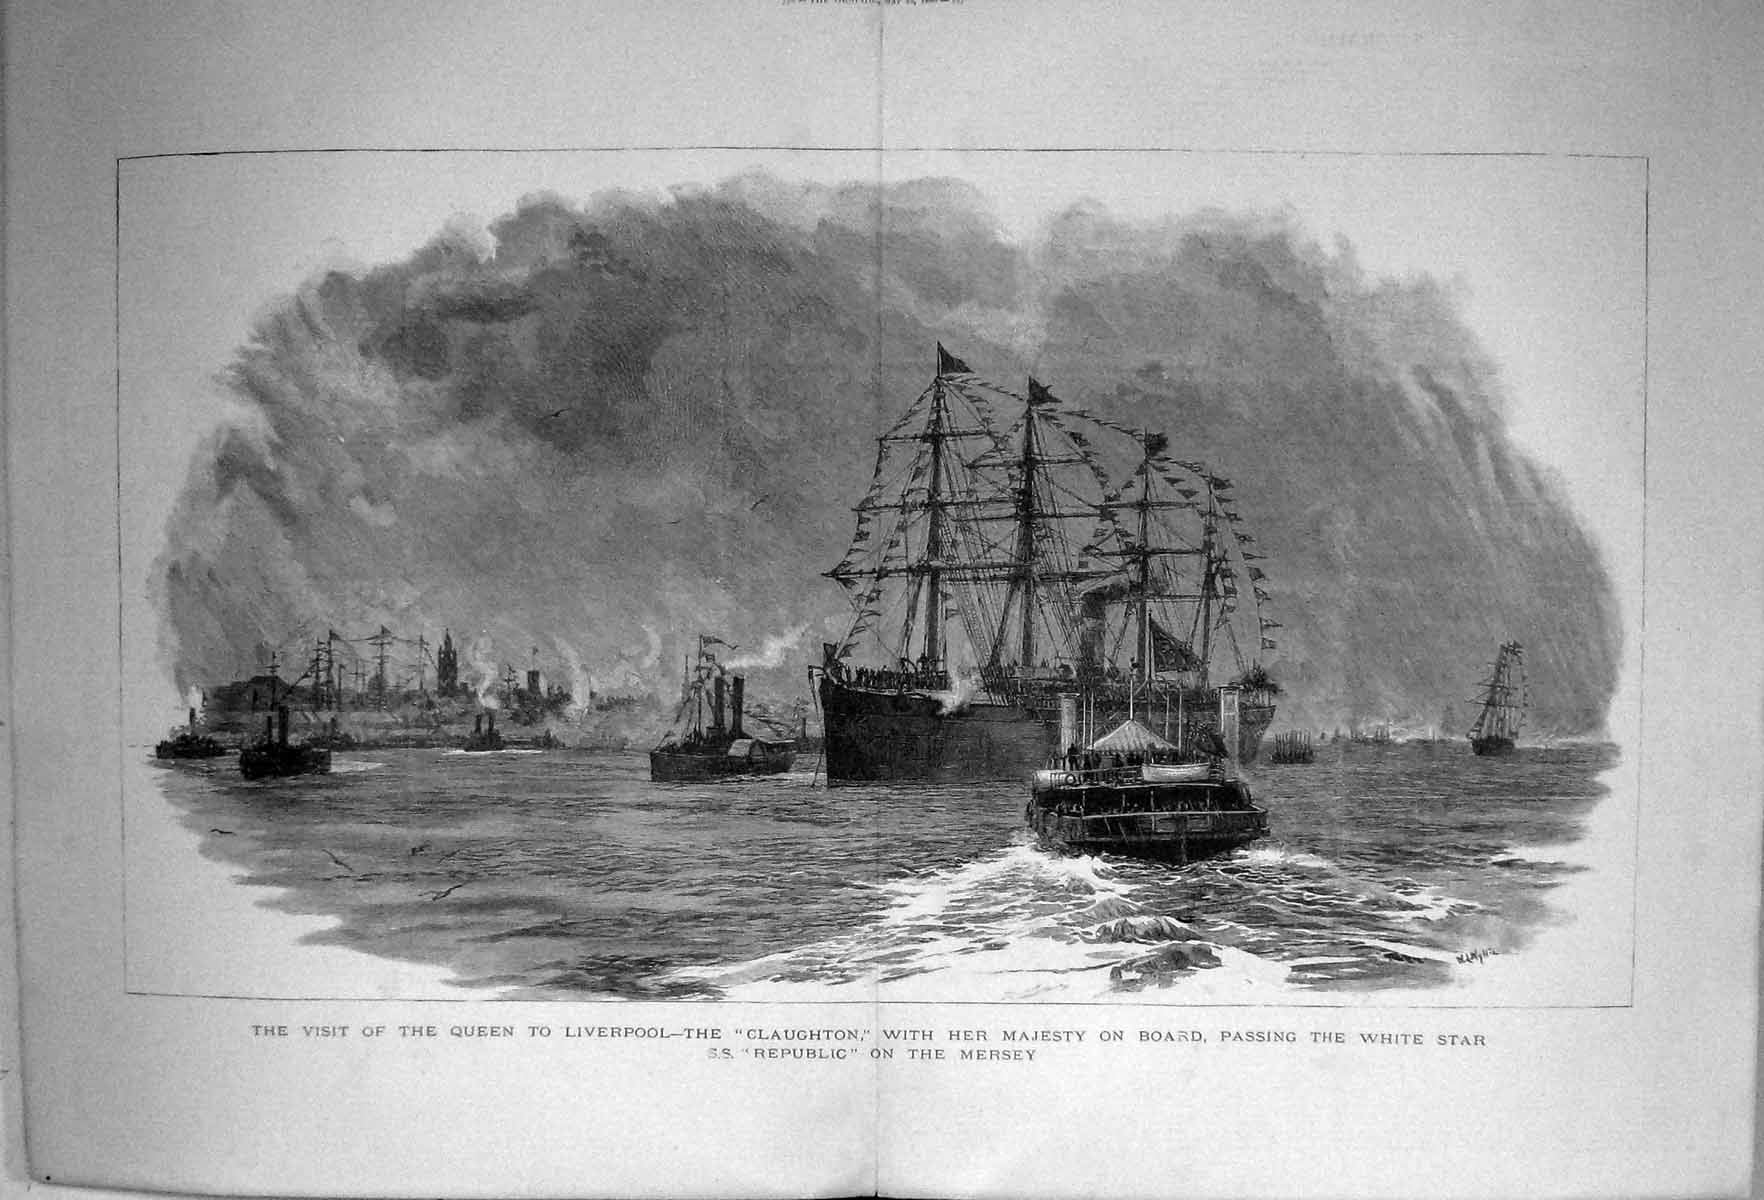 Old-1880-Queen-Visit-Liverpool-Ship-Claughton-Queen-White-Star-Republ-Victorian